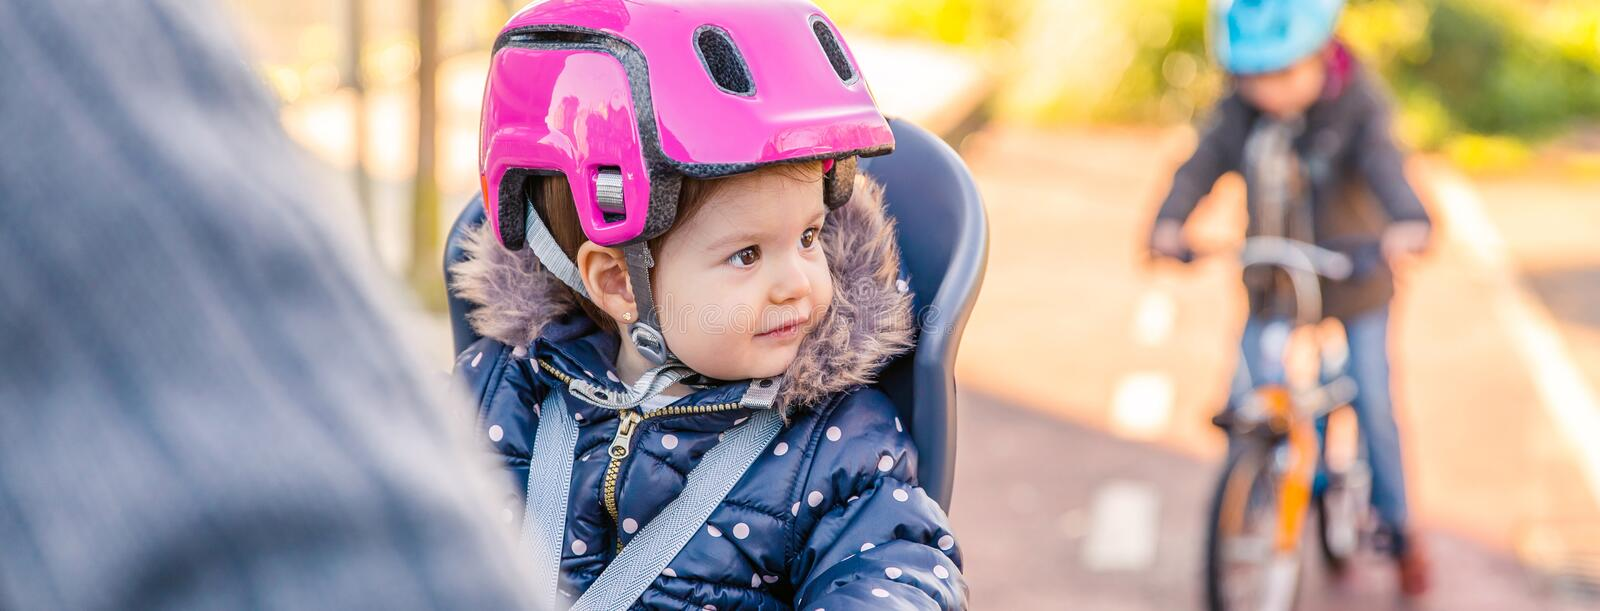 Lttle girl with helmet on head sitting in bike seat royalty free stock images